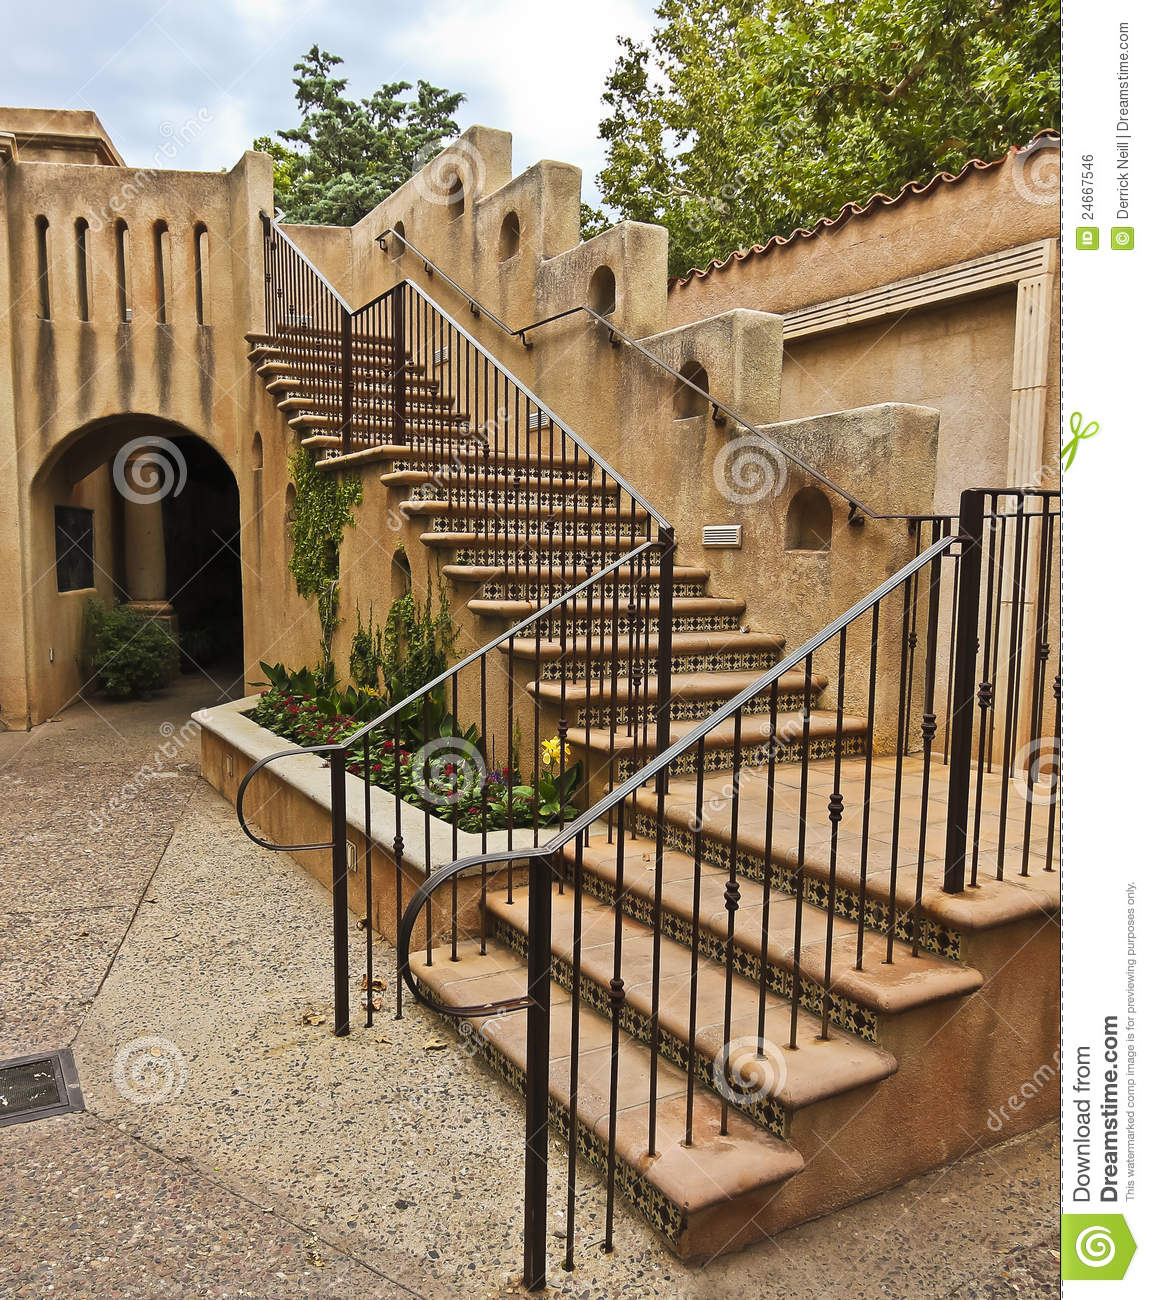 Spanish Colonial Architecture: A Staircase In Spanish-Colonial Style Architecture Stock